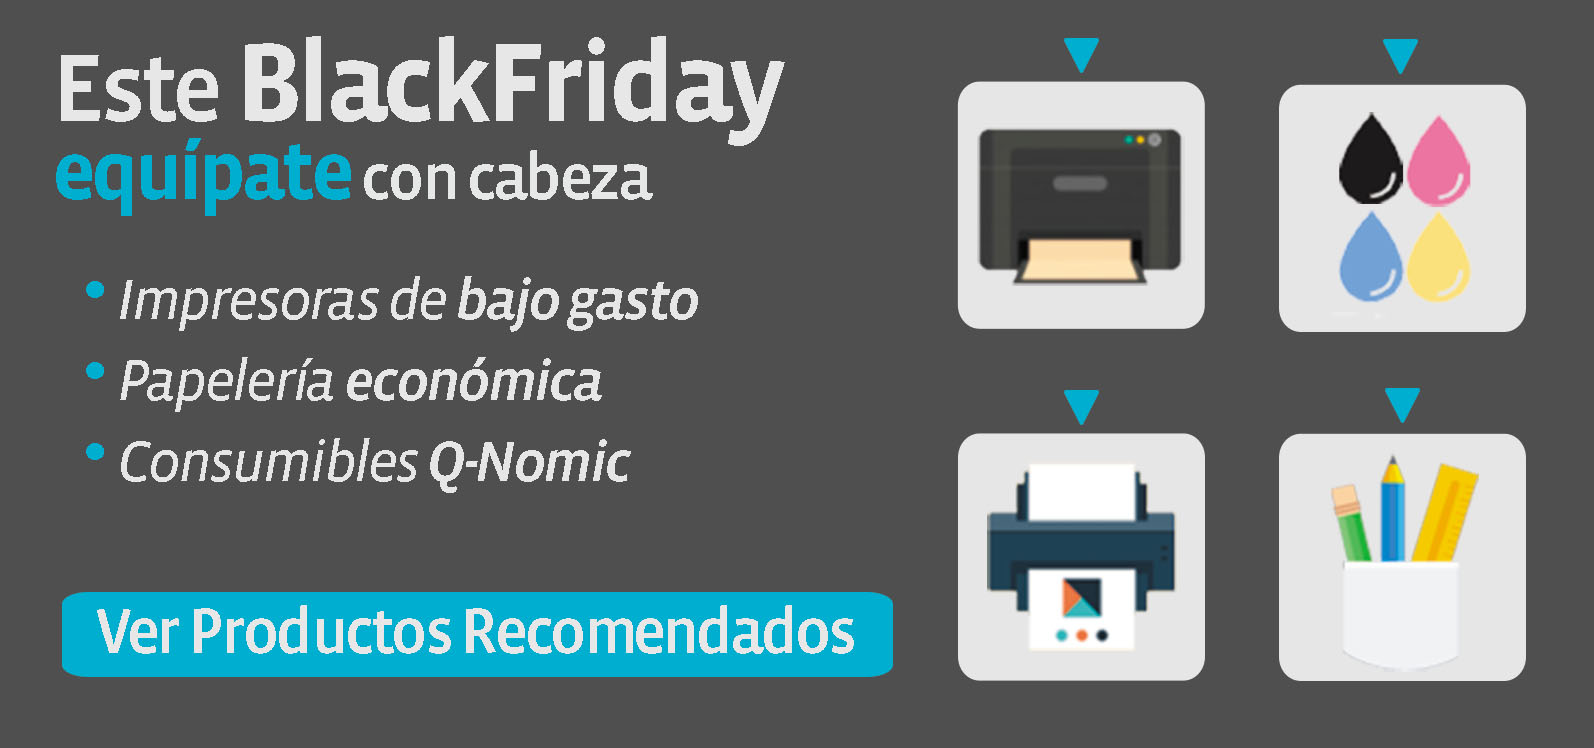 black friday impresoras